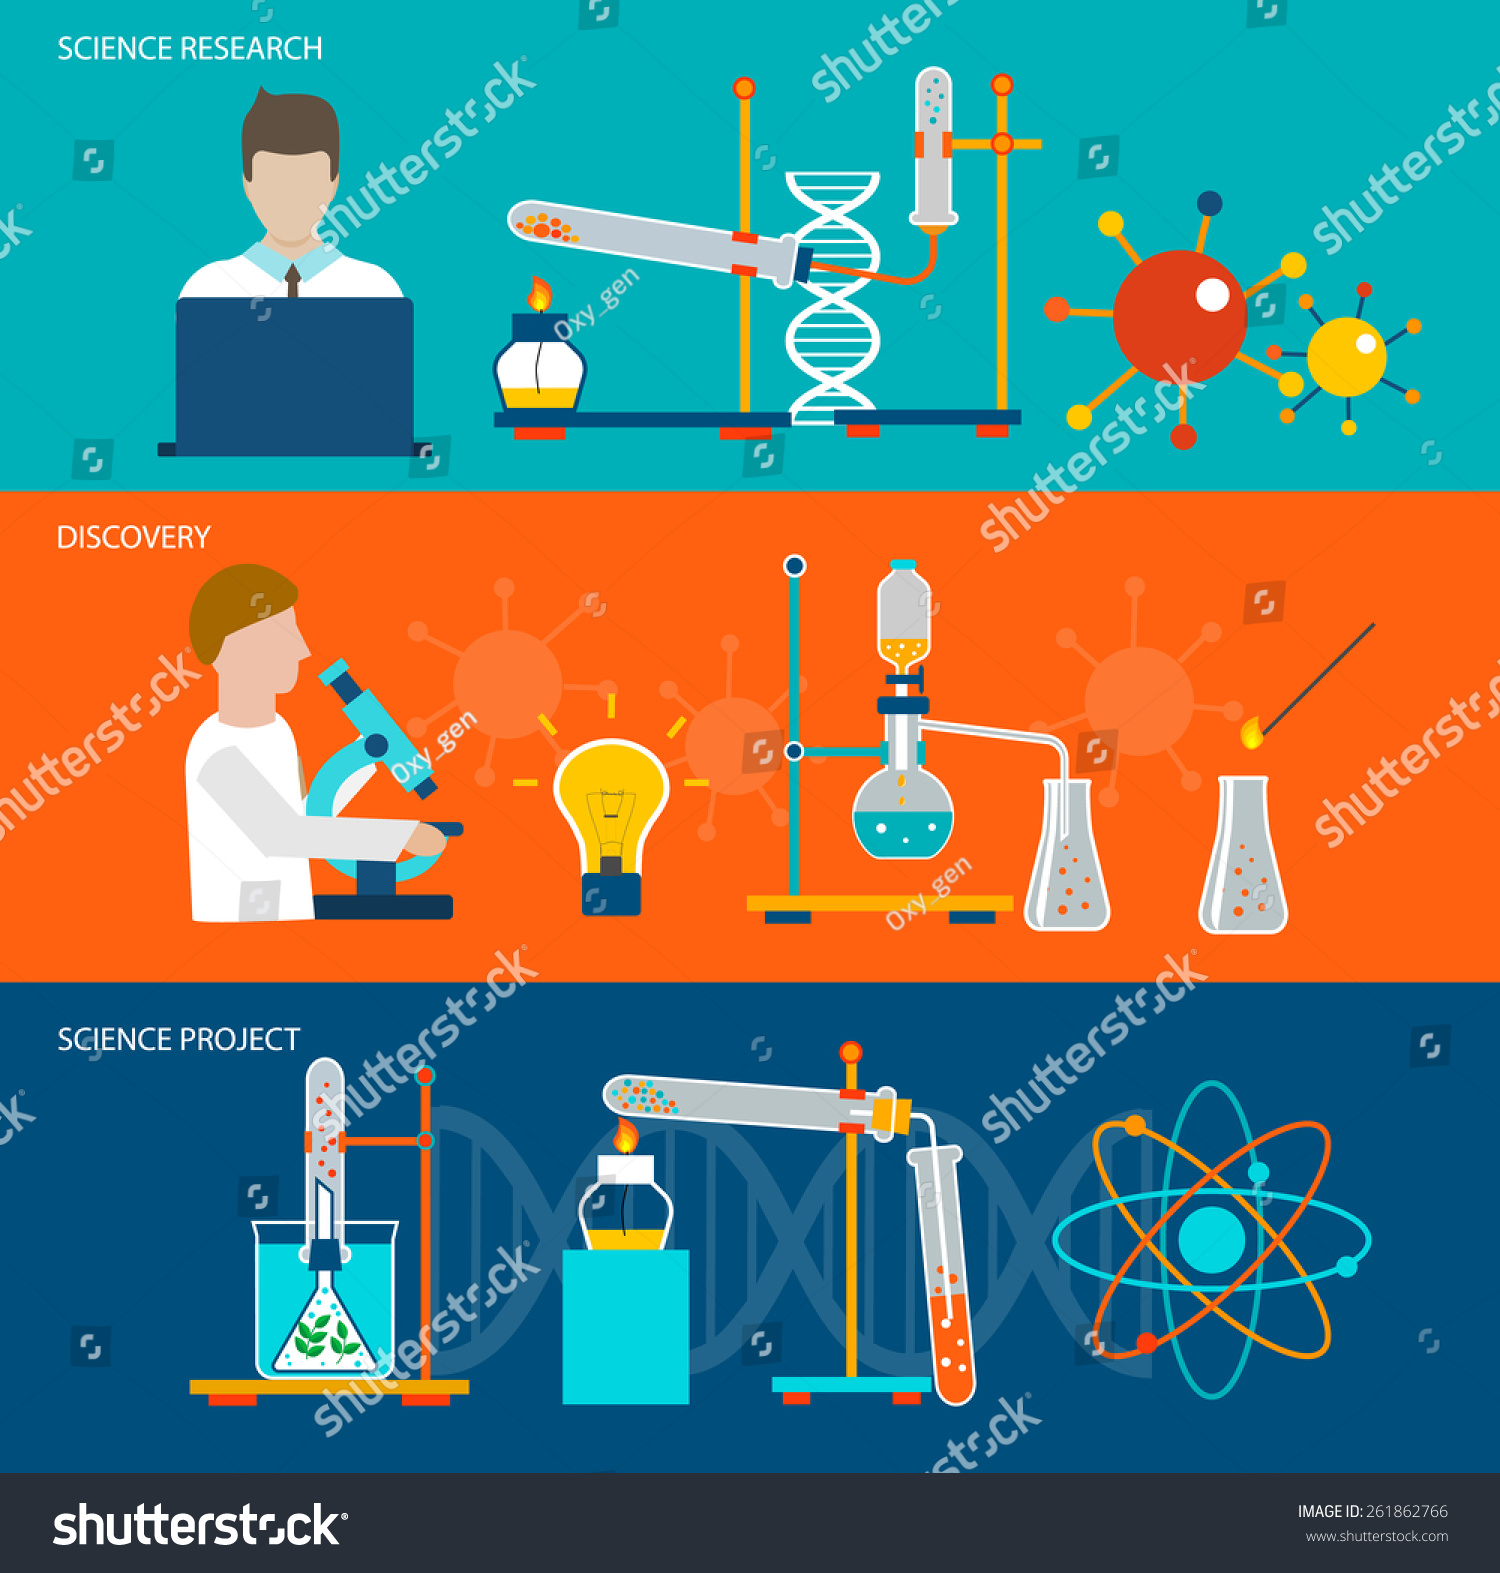 Science Design Project: Science Research Chemical Laboratory Horizontal Banners